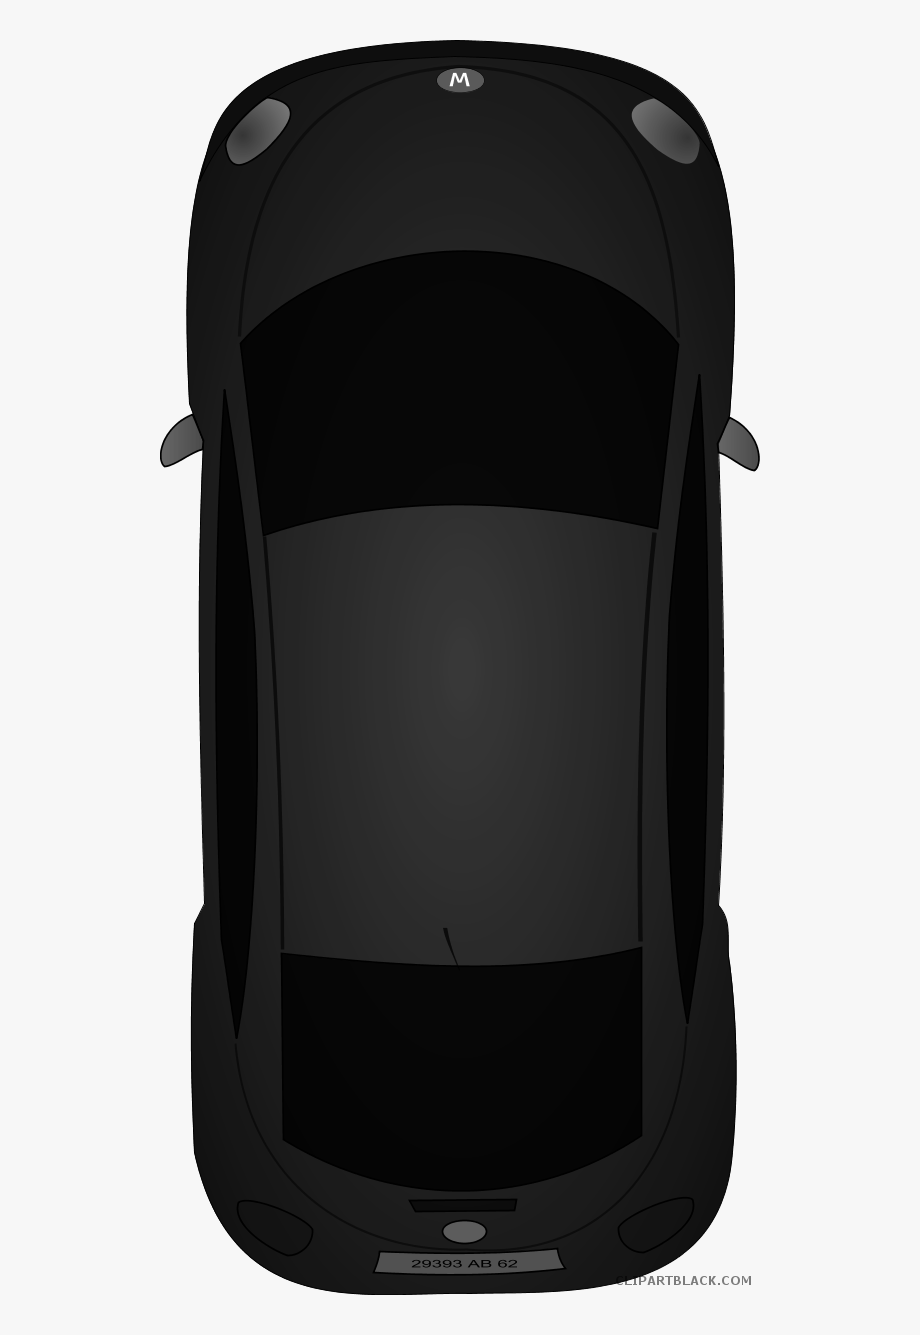 Car Top View Transportation Free Black White Clipart.